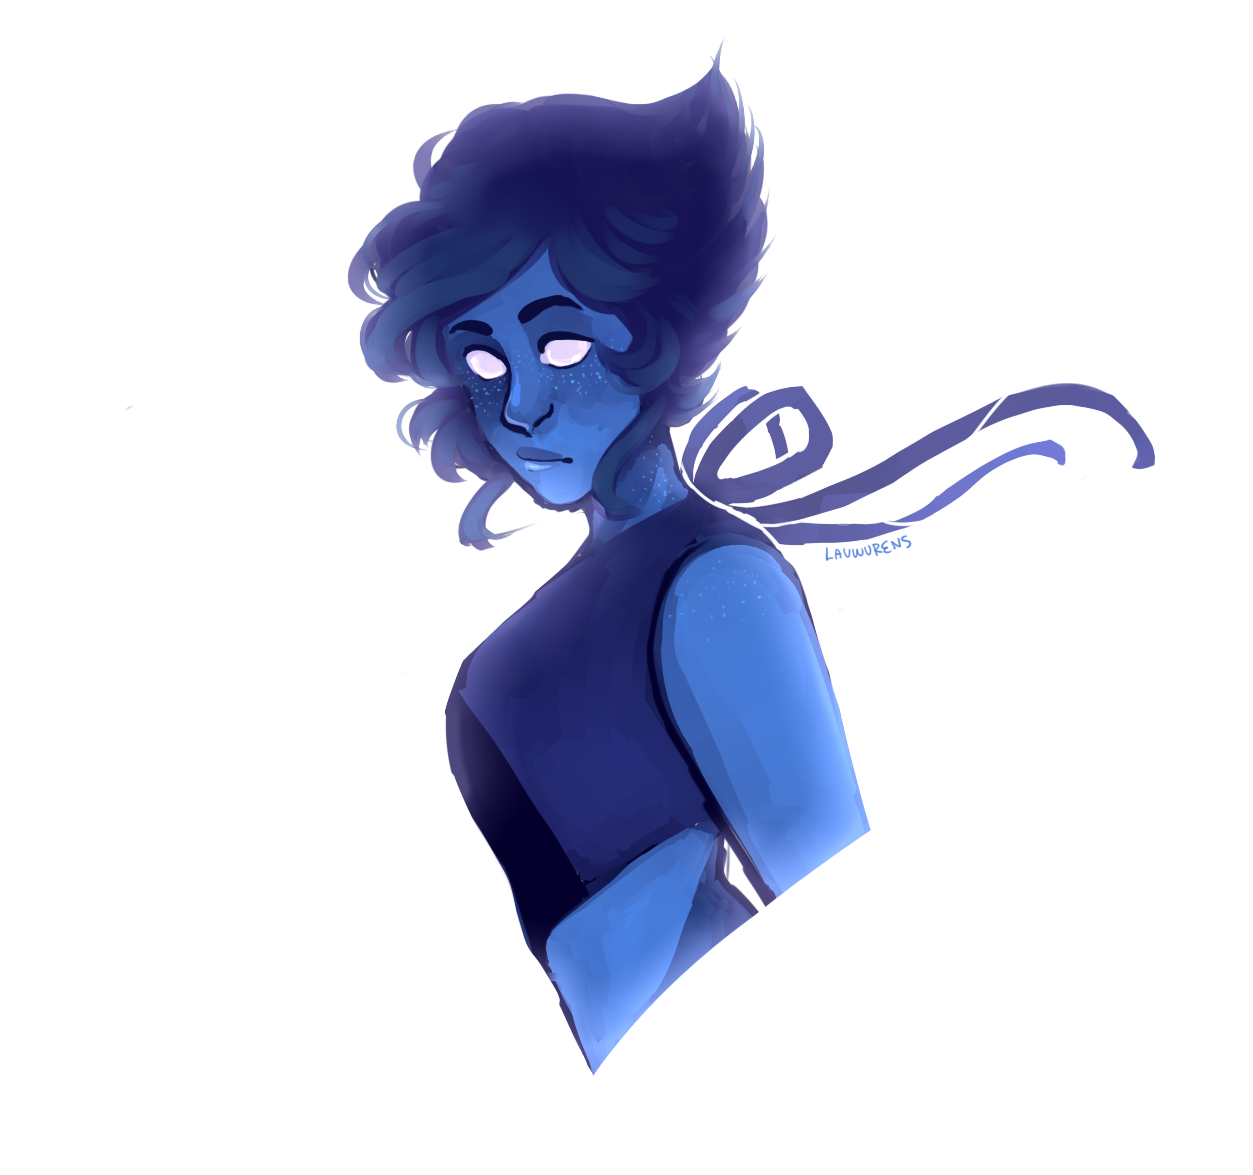 tbh i miss her old colors (the neon hurts my eyes, tbh) not really into su anymore, but i kept seeing @galactibun's drawings of lapis & i wanted to give it a go B)